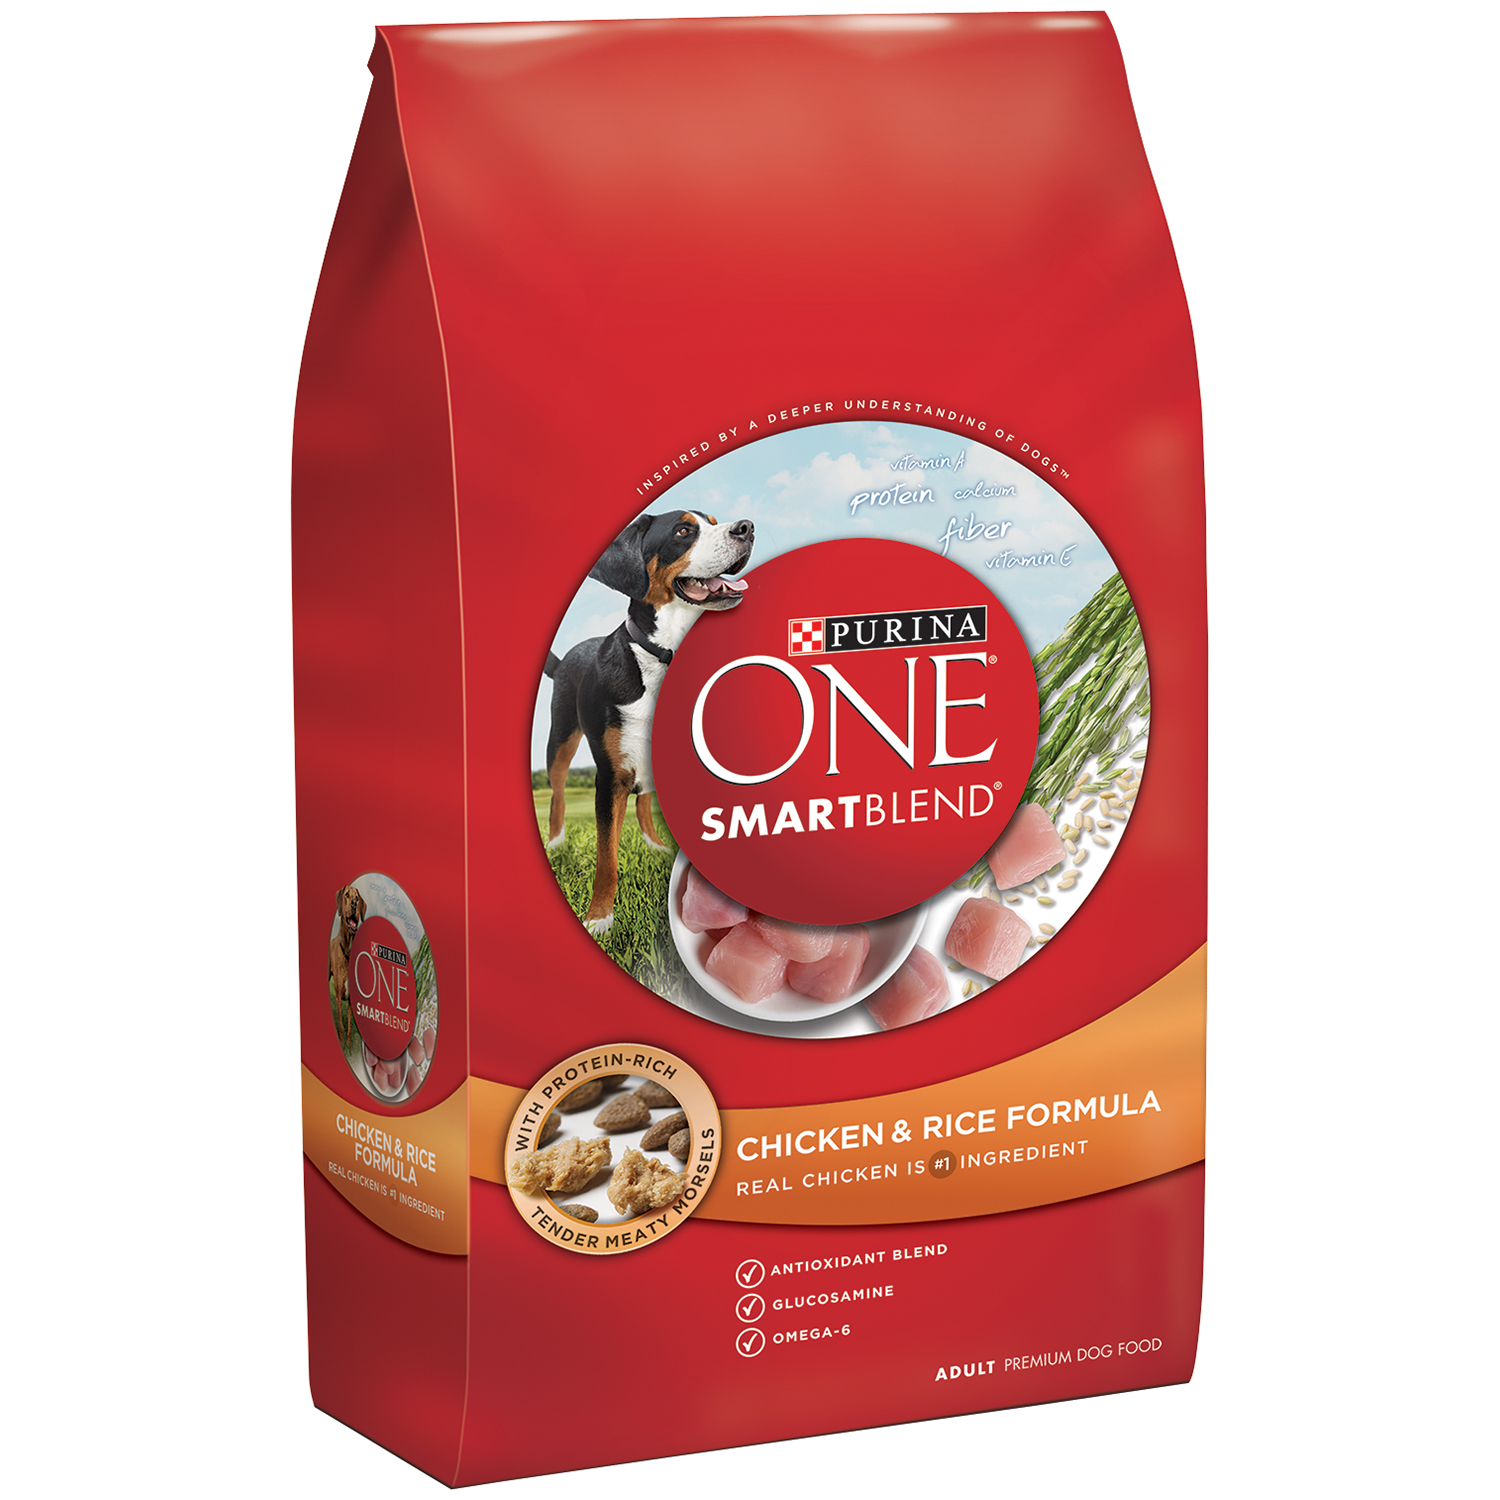 Purina ONE SmartBlend Chicken & Rice Formula Adult Premium Dog Food 8 lb. Bag